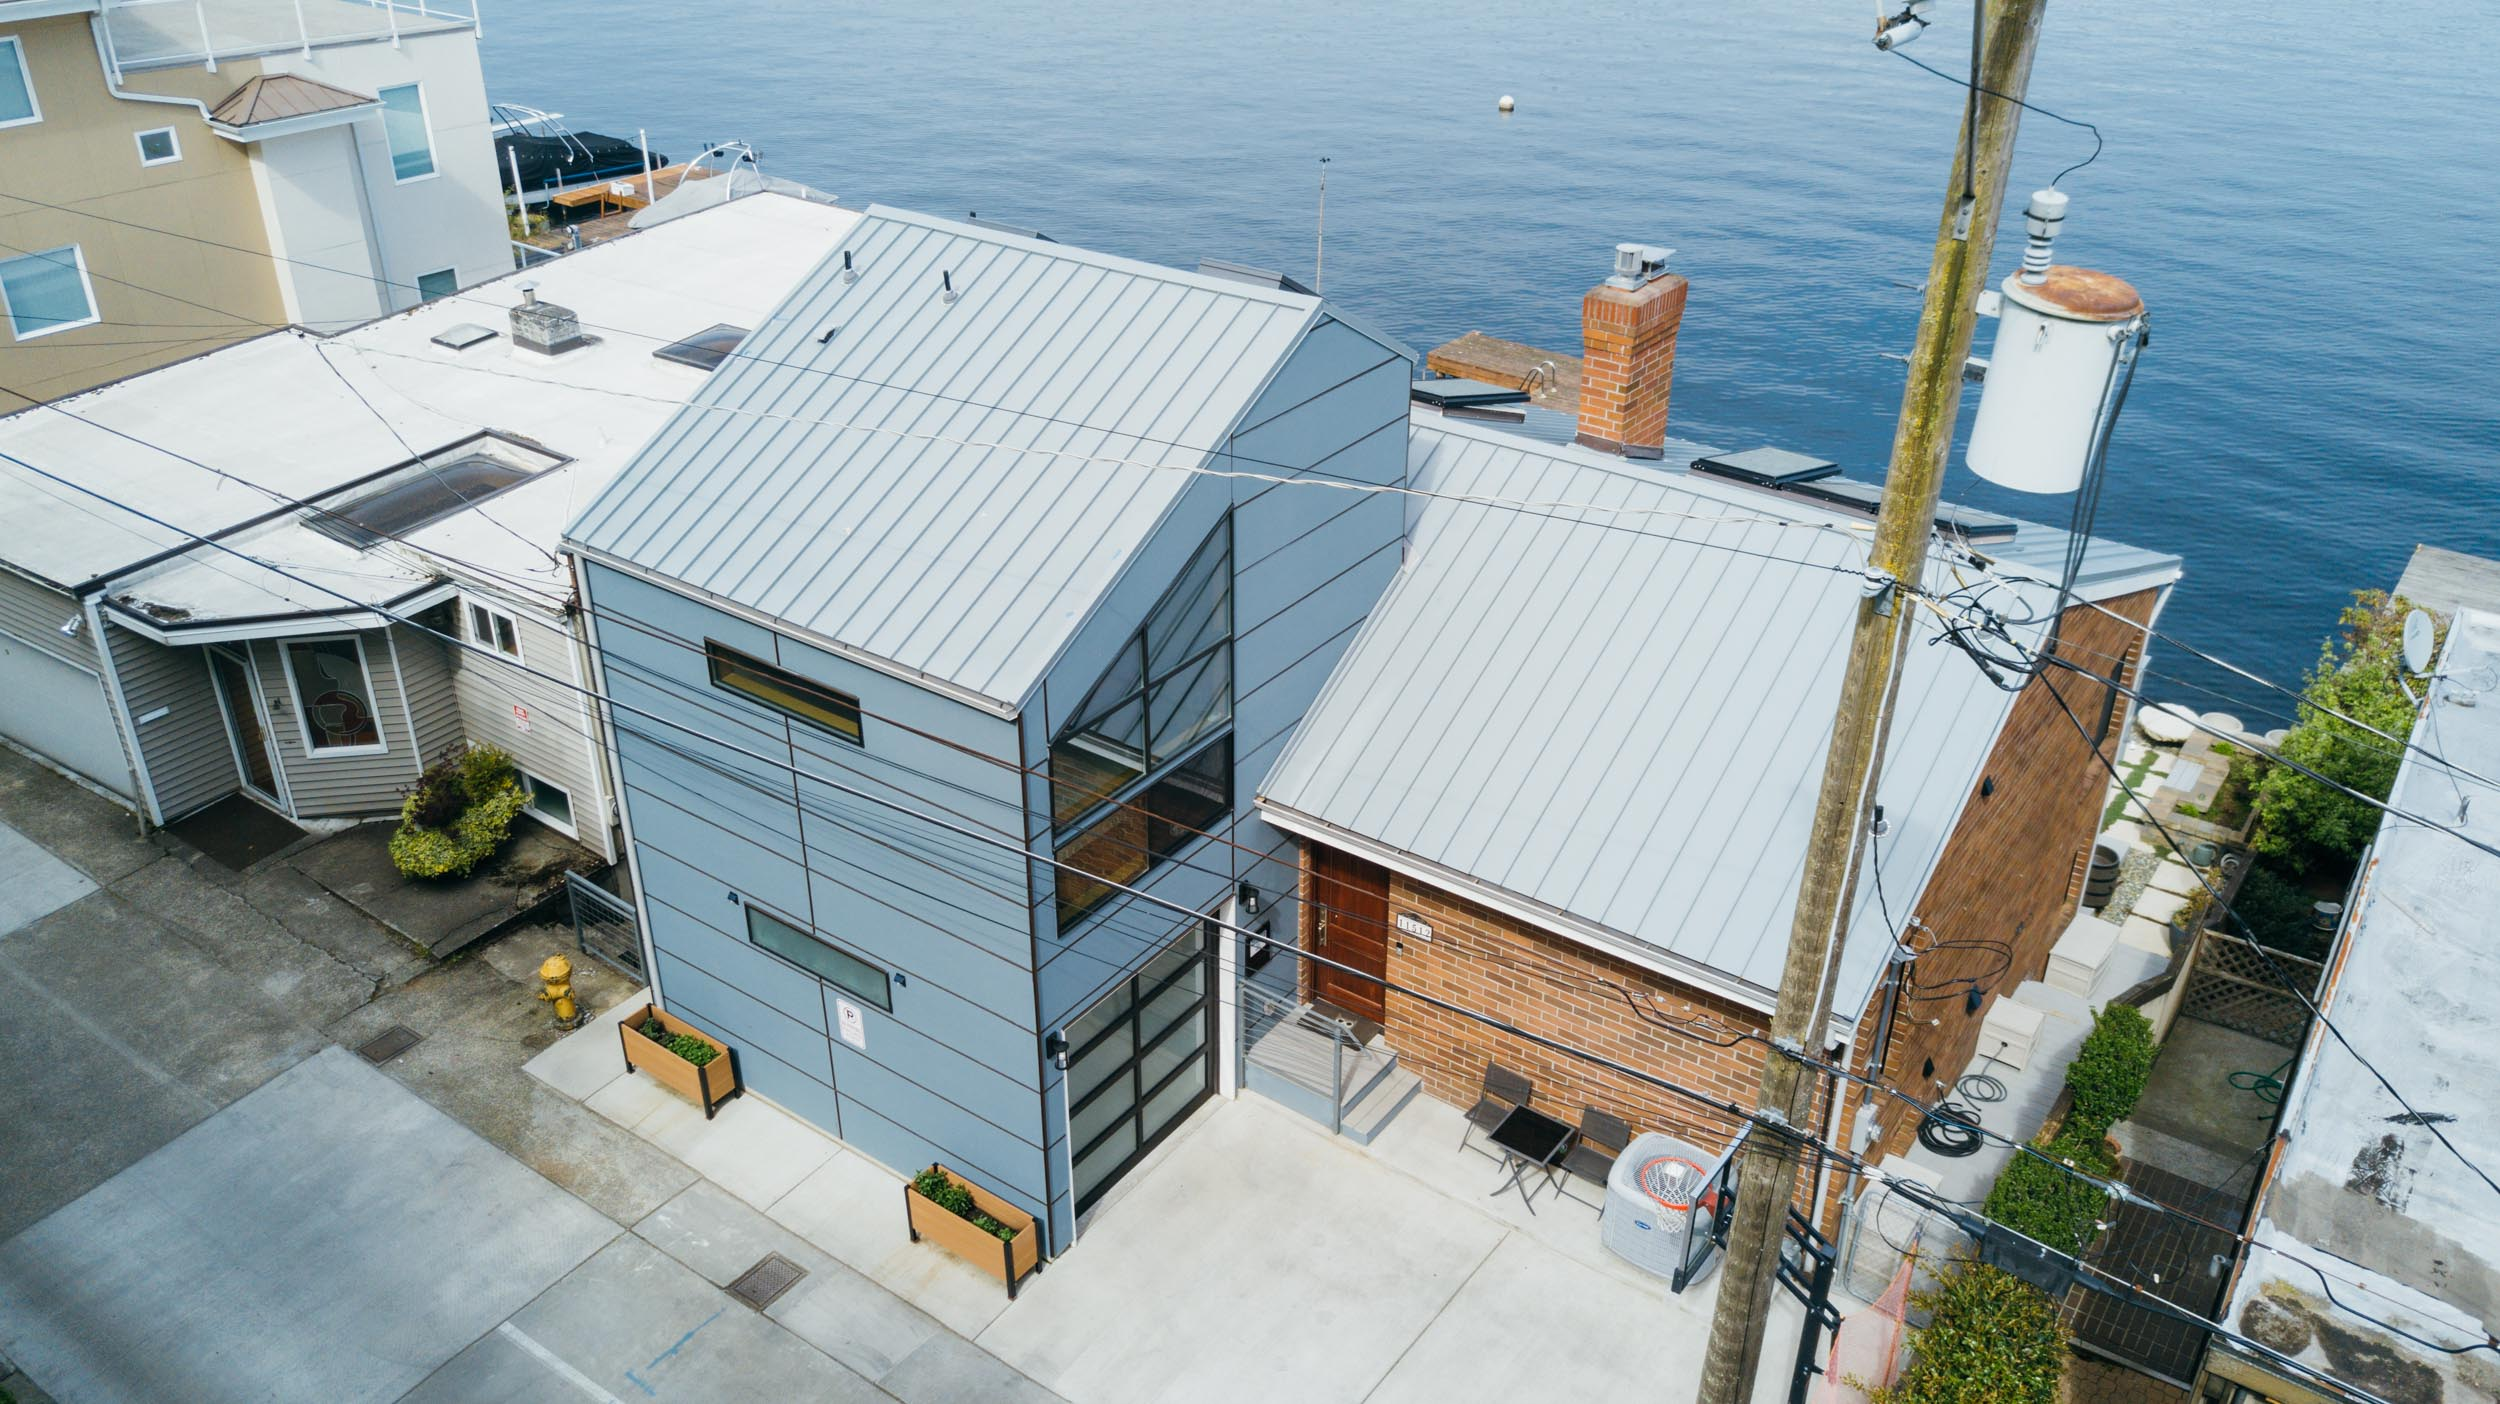 WC-STUDIO-NORTH-SEATTLE-WATERFRONT-HOME-ADDITON.jpg